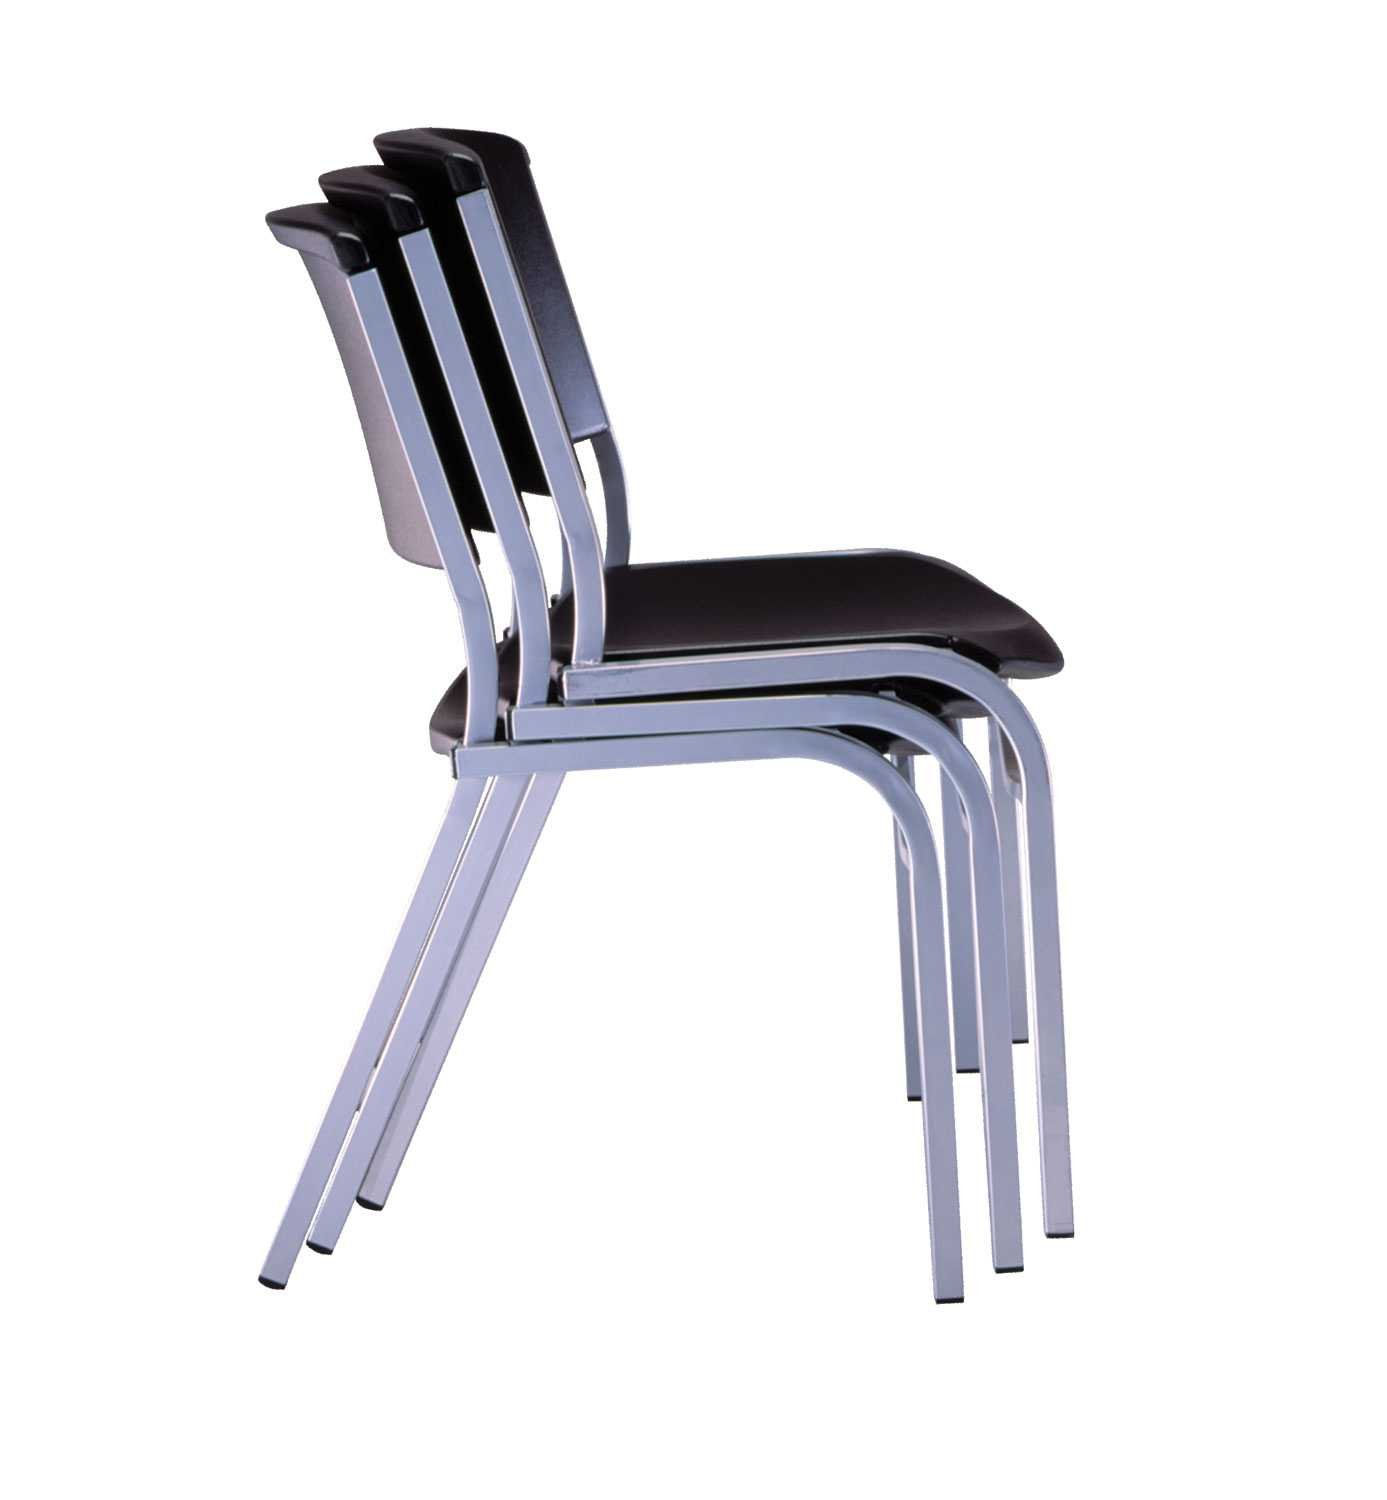 handhold black collections gray series chairs iso stacking cammac chair copy